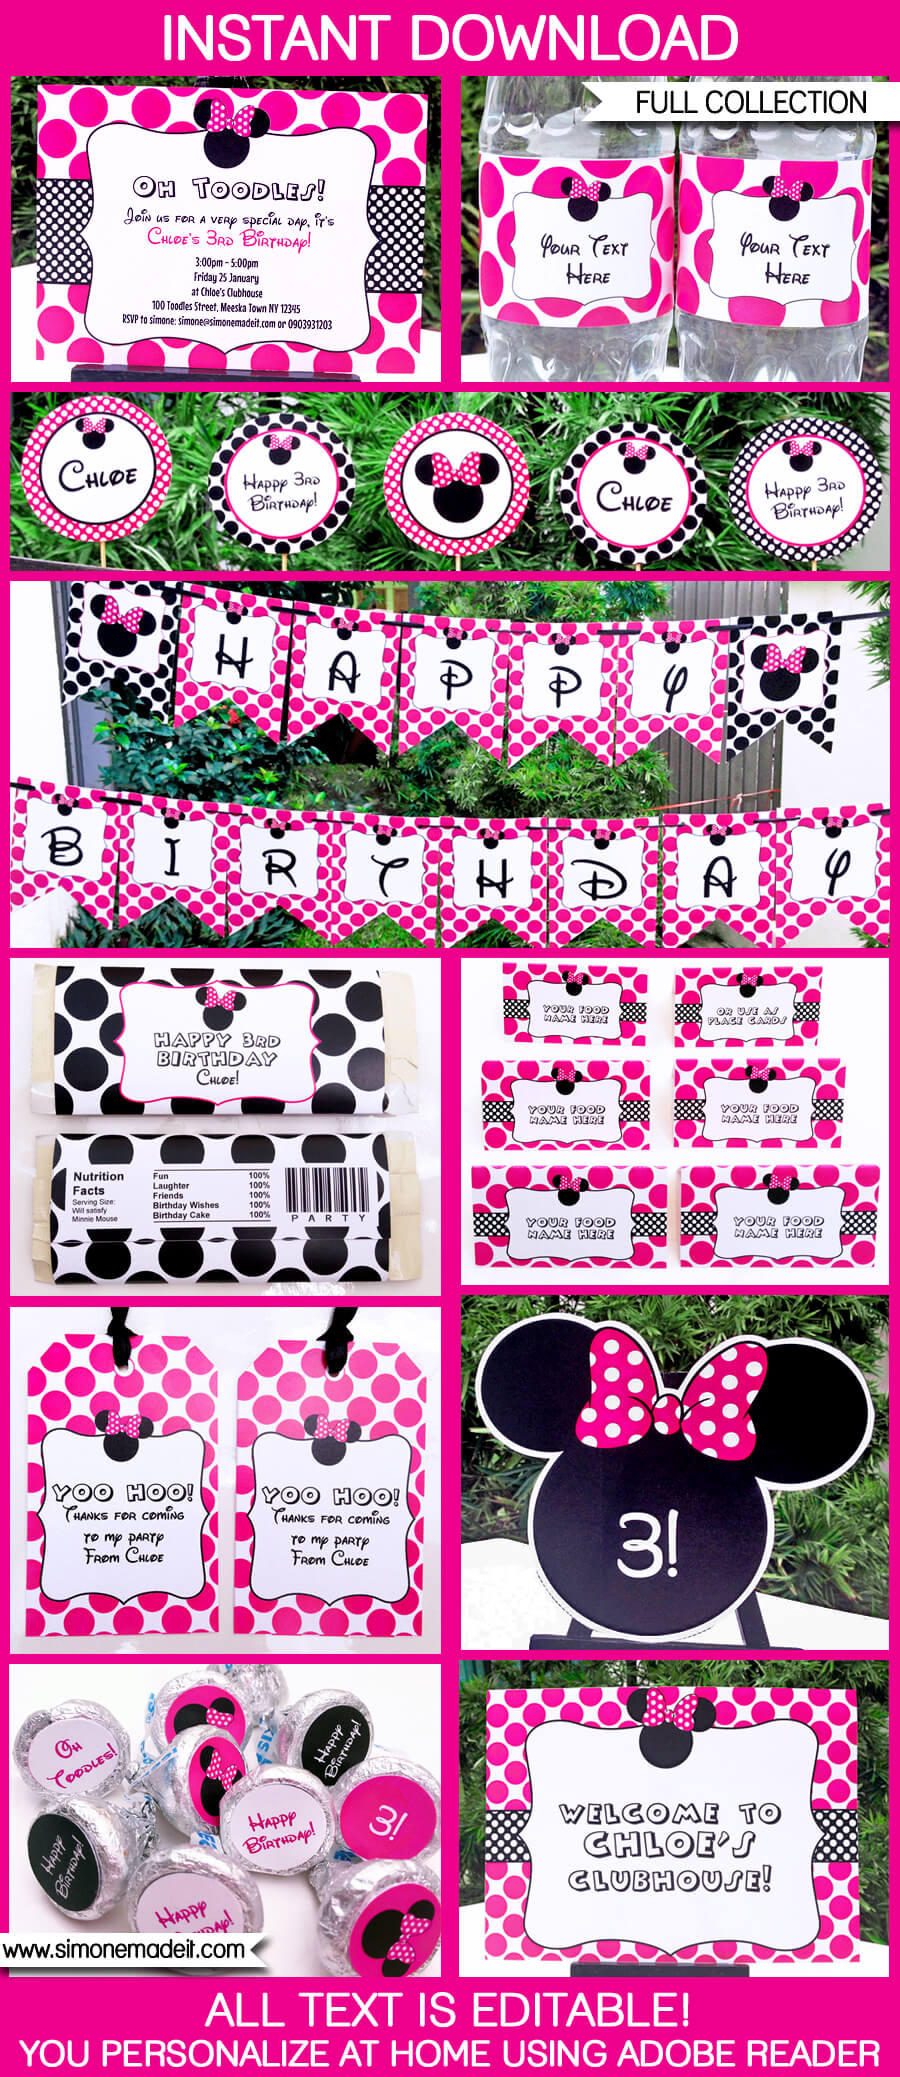 Minnie Mouse Party Printables, Invitations & Decorations | Editable Birthday Party Theme templates | $12.50 via SIMONEmadeit.com